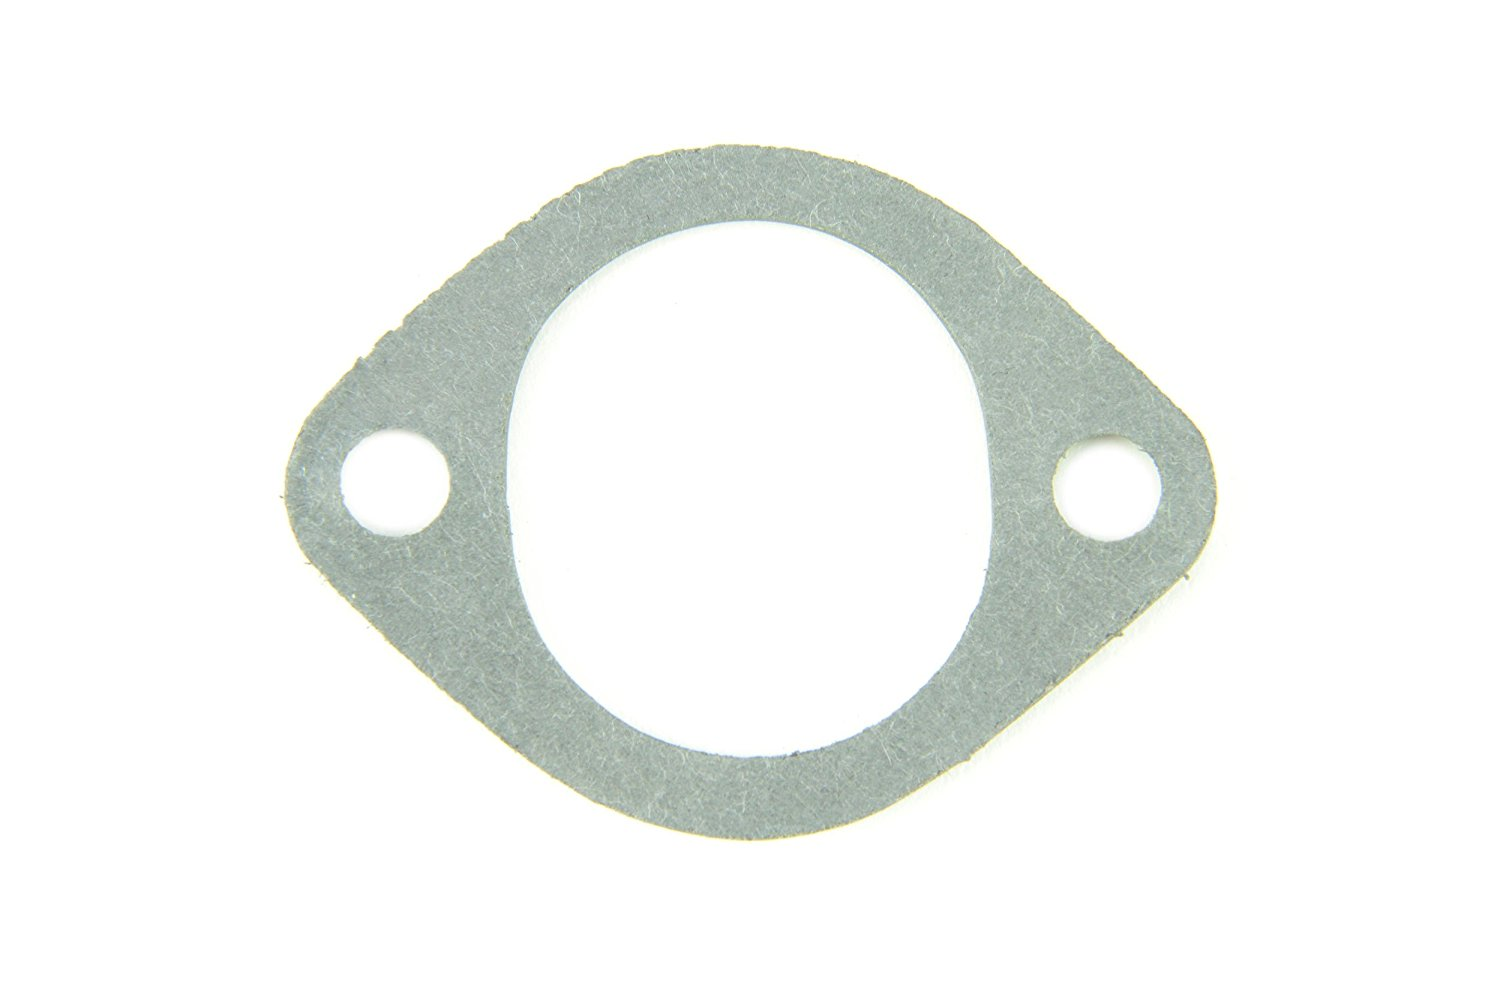 OEM 5-Briggs /& Stratton Intake Gaskets  Part # 272554S